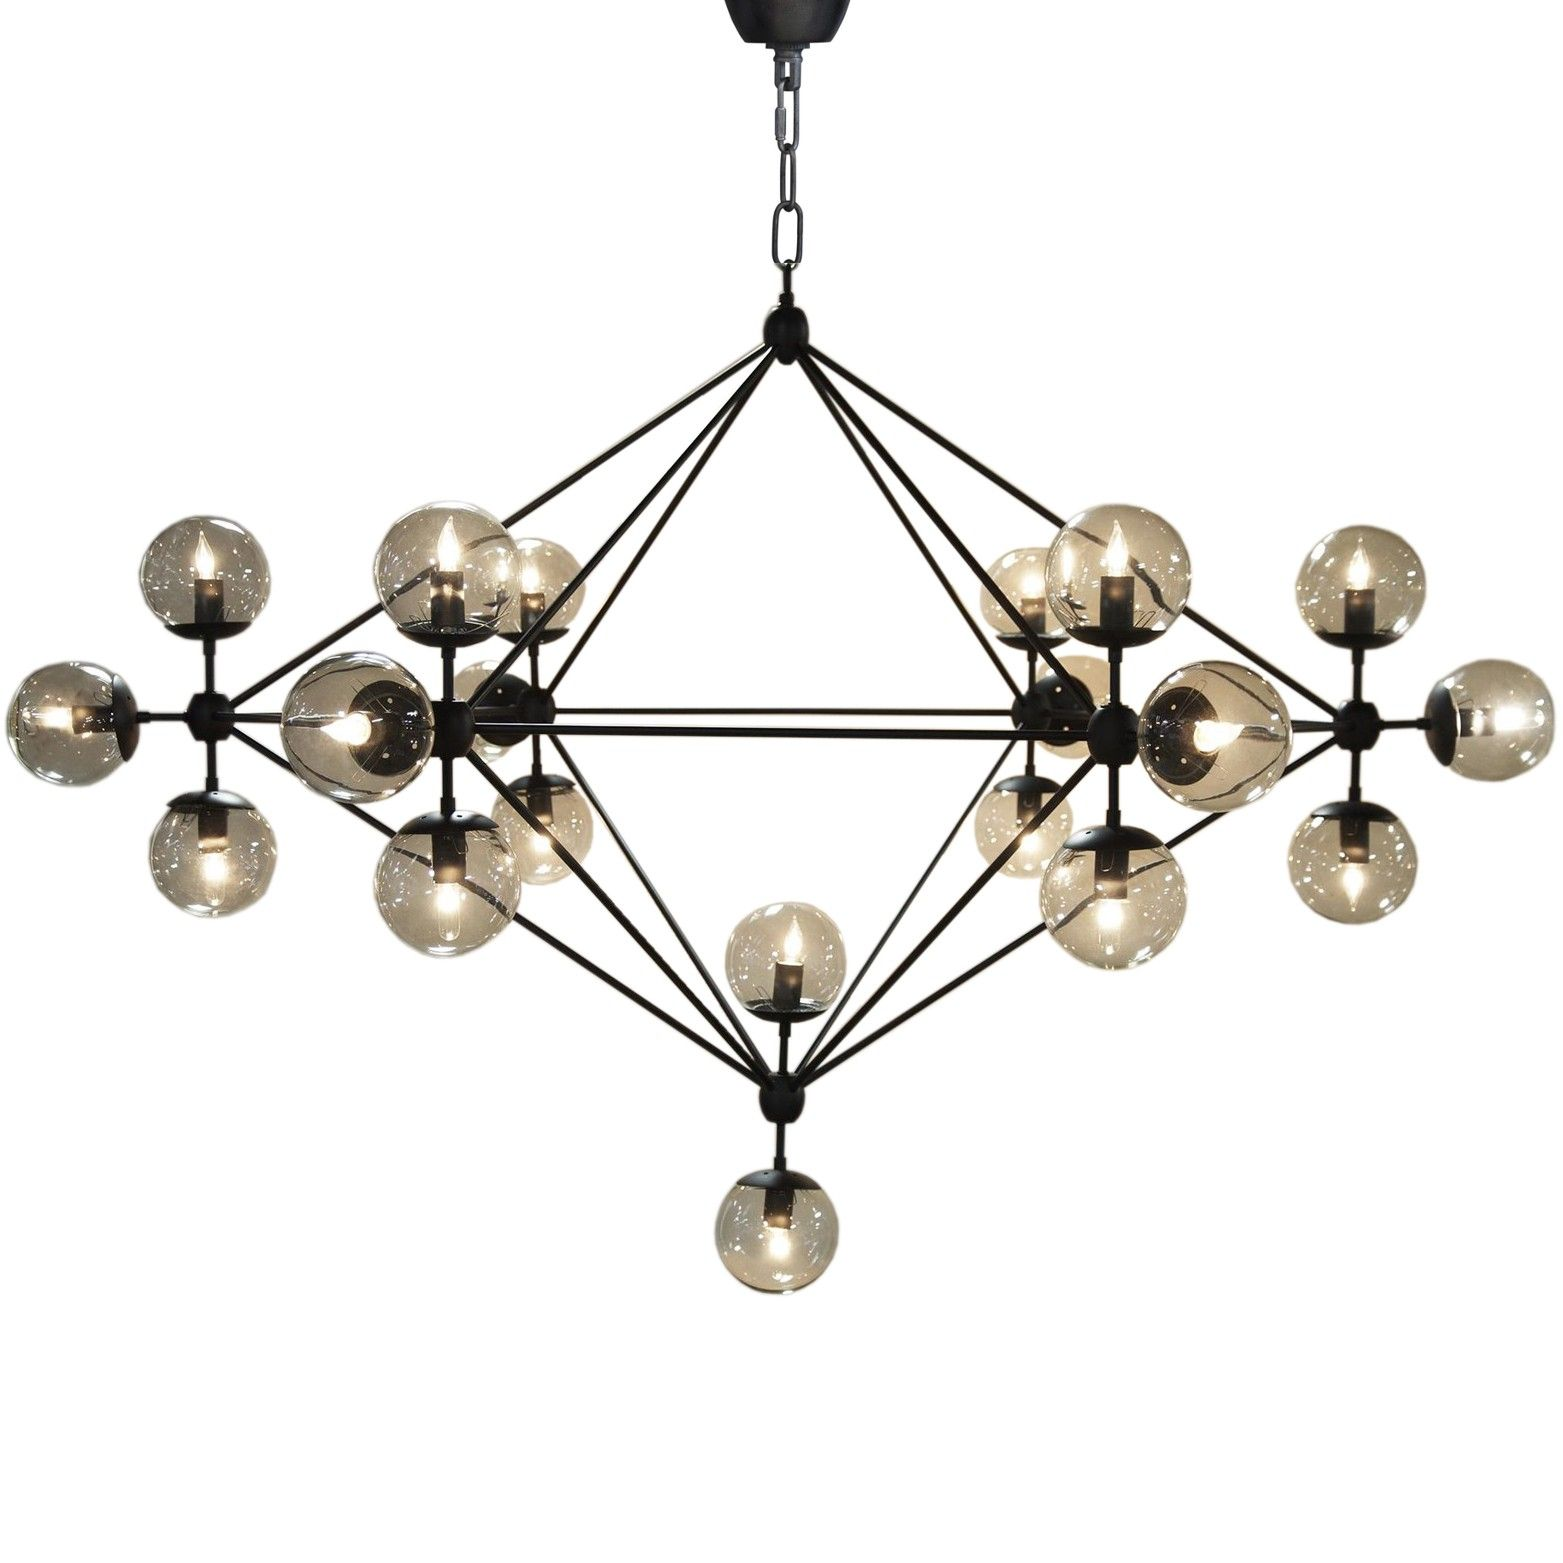 simple chandelier lighting. the pluto chandelier by noir emphasizes natural simple and classic design has been lighting l